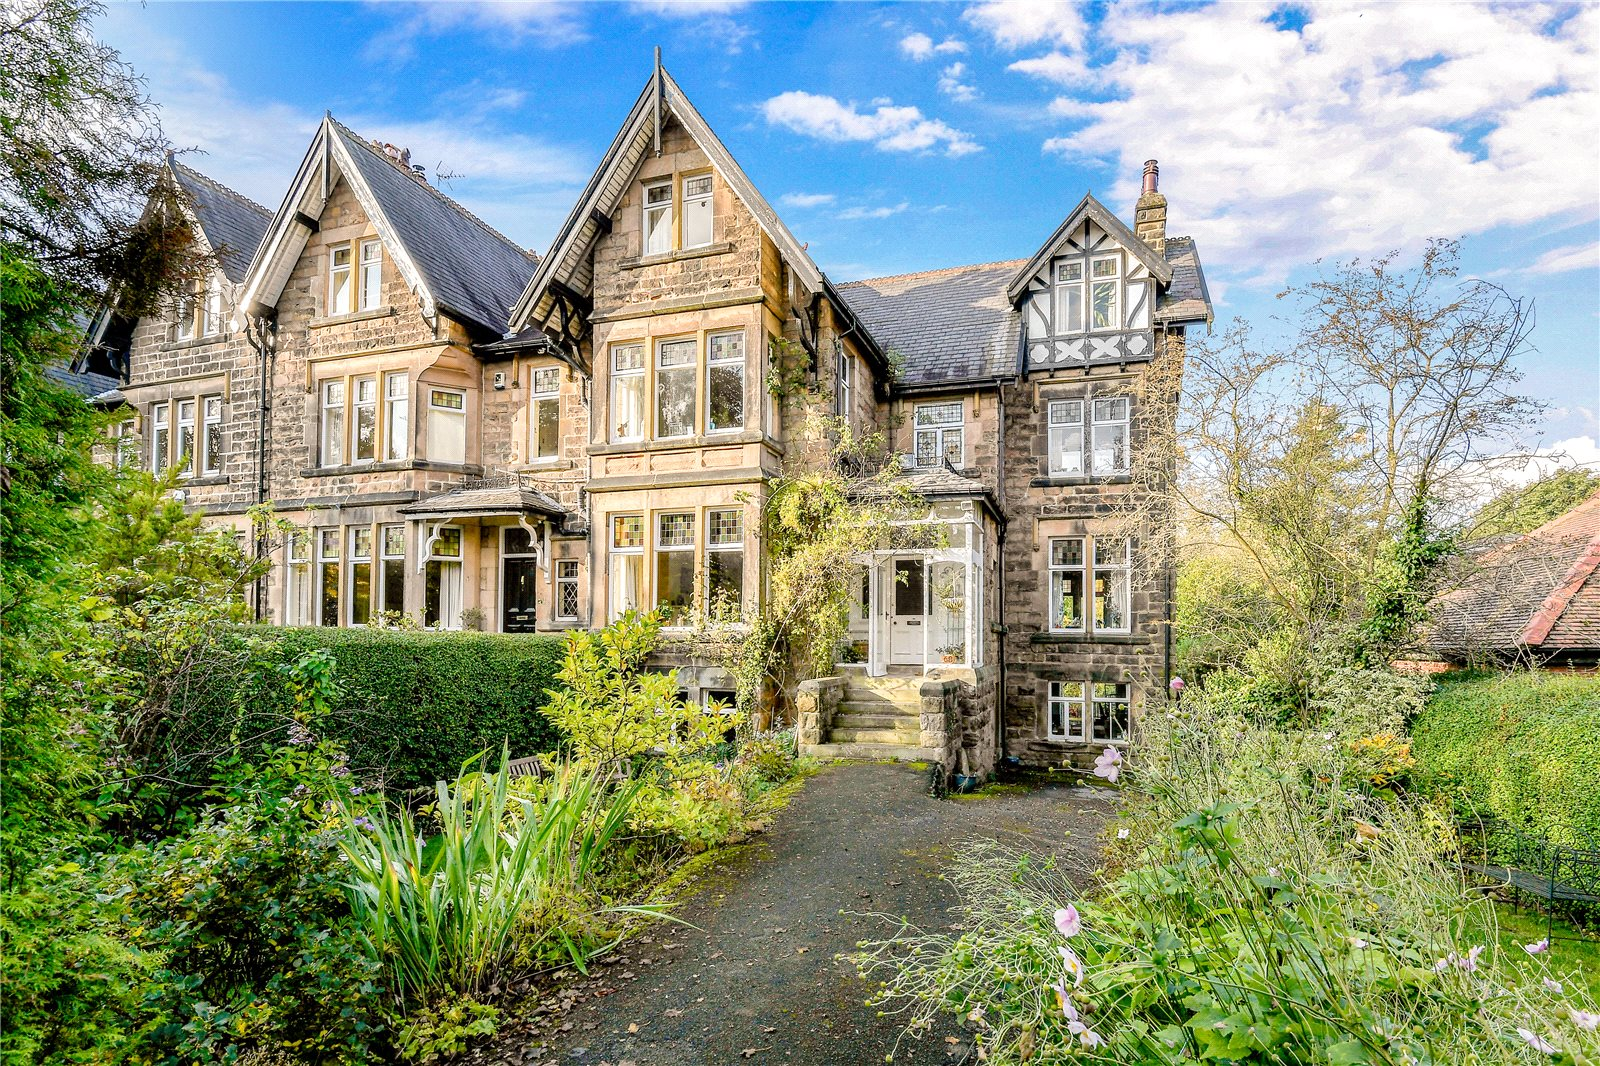 Single Family Home for Sale at Duchy Road, Harrogate, North Yorkshire, HG1 Harrogate, England